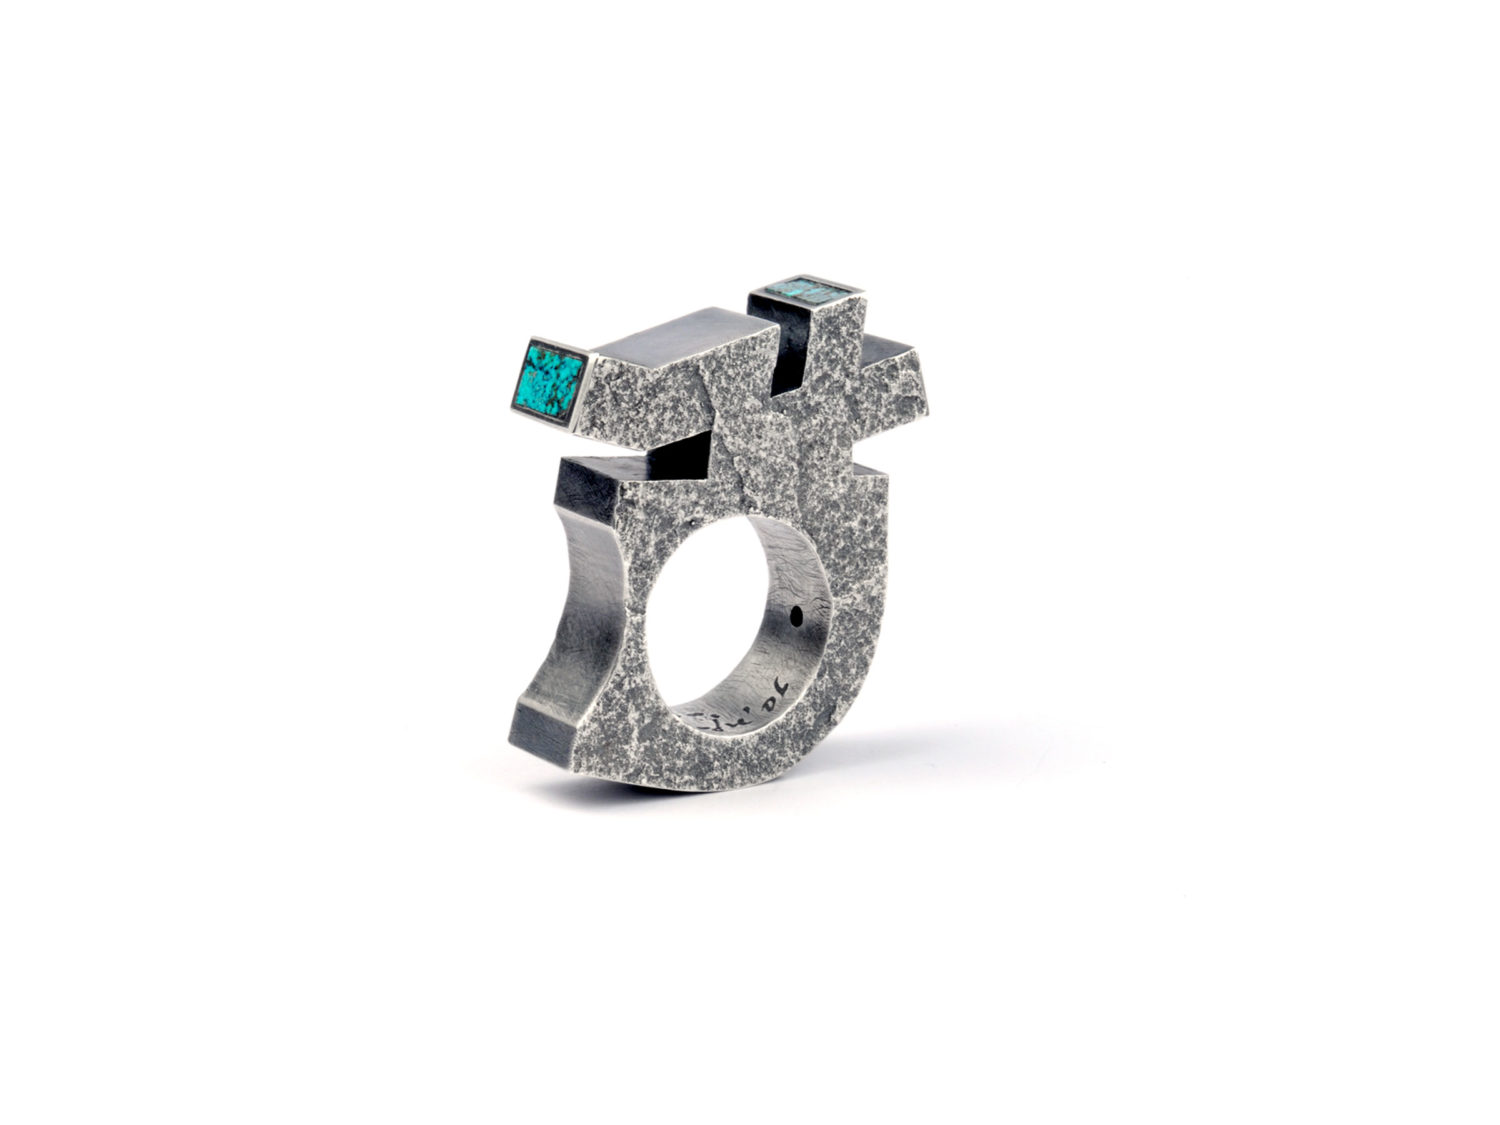 RING, OXIDIZED SILVER, TURQUOISE, 2006